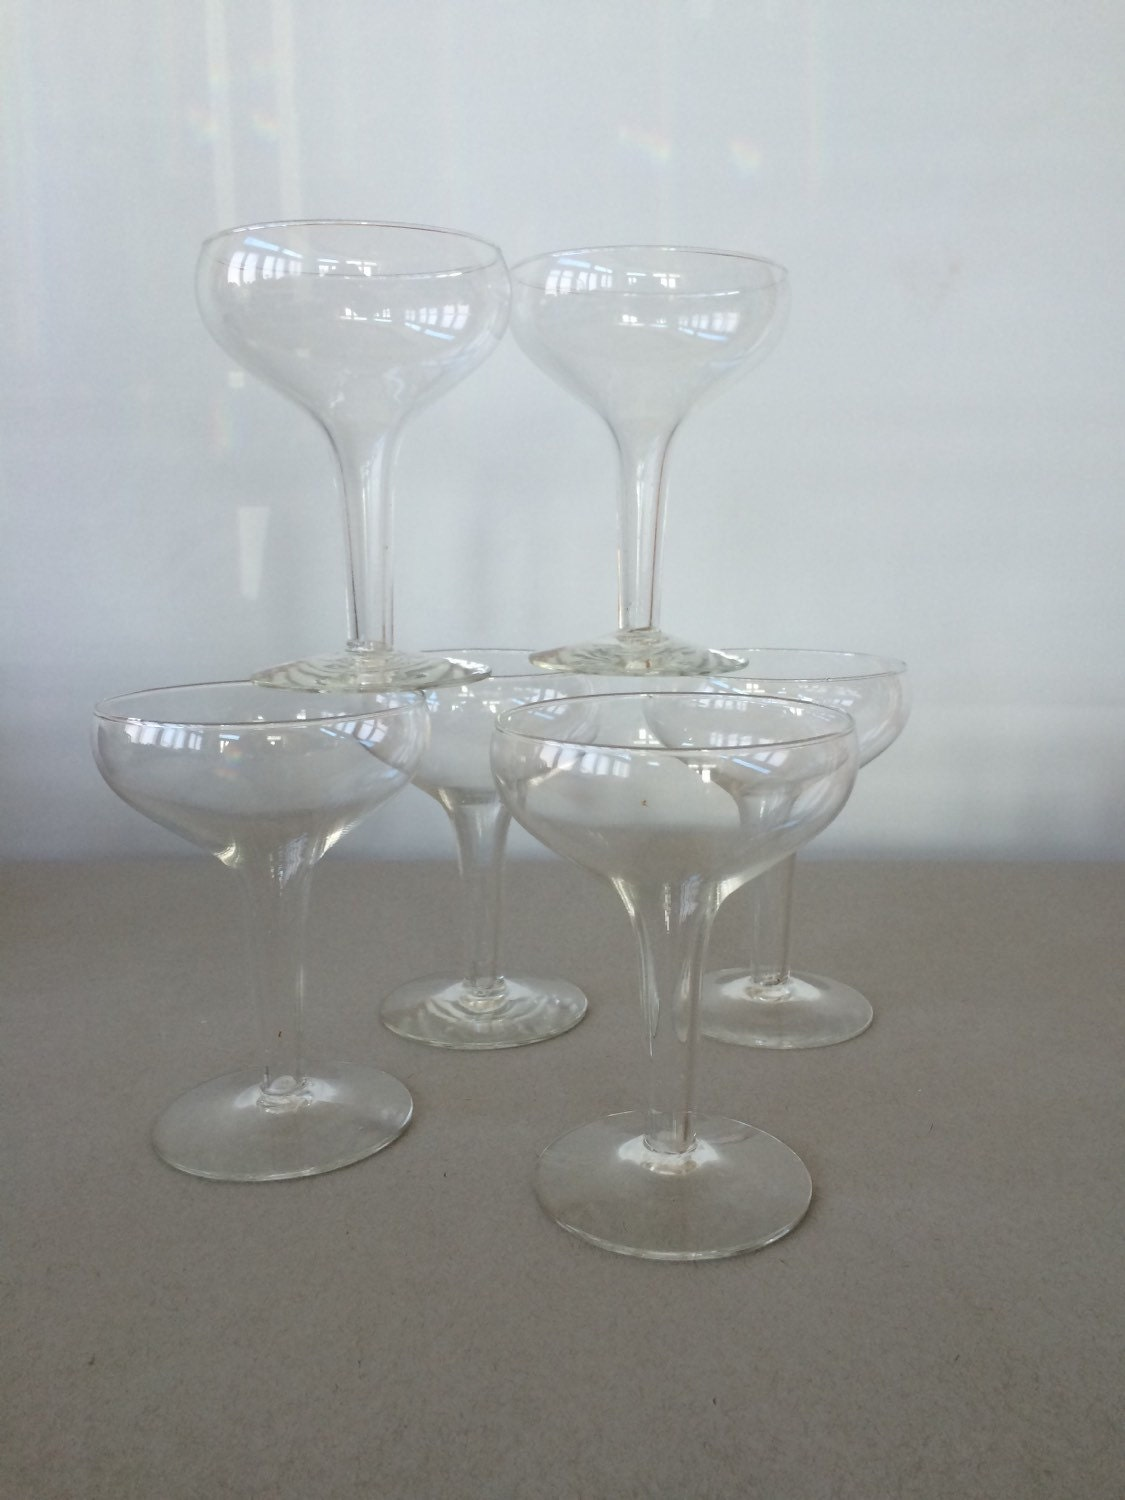 Vintage hollow stem champagne coupes champagne glasses set - Hollow stem champagne glasses ...